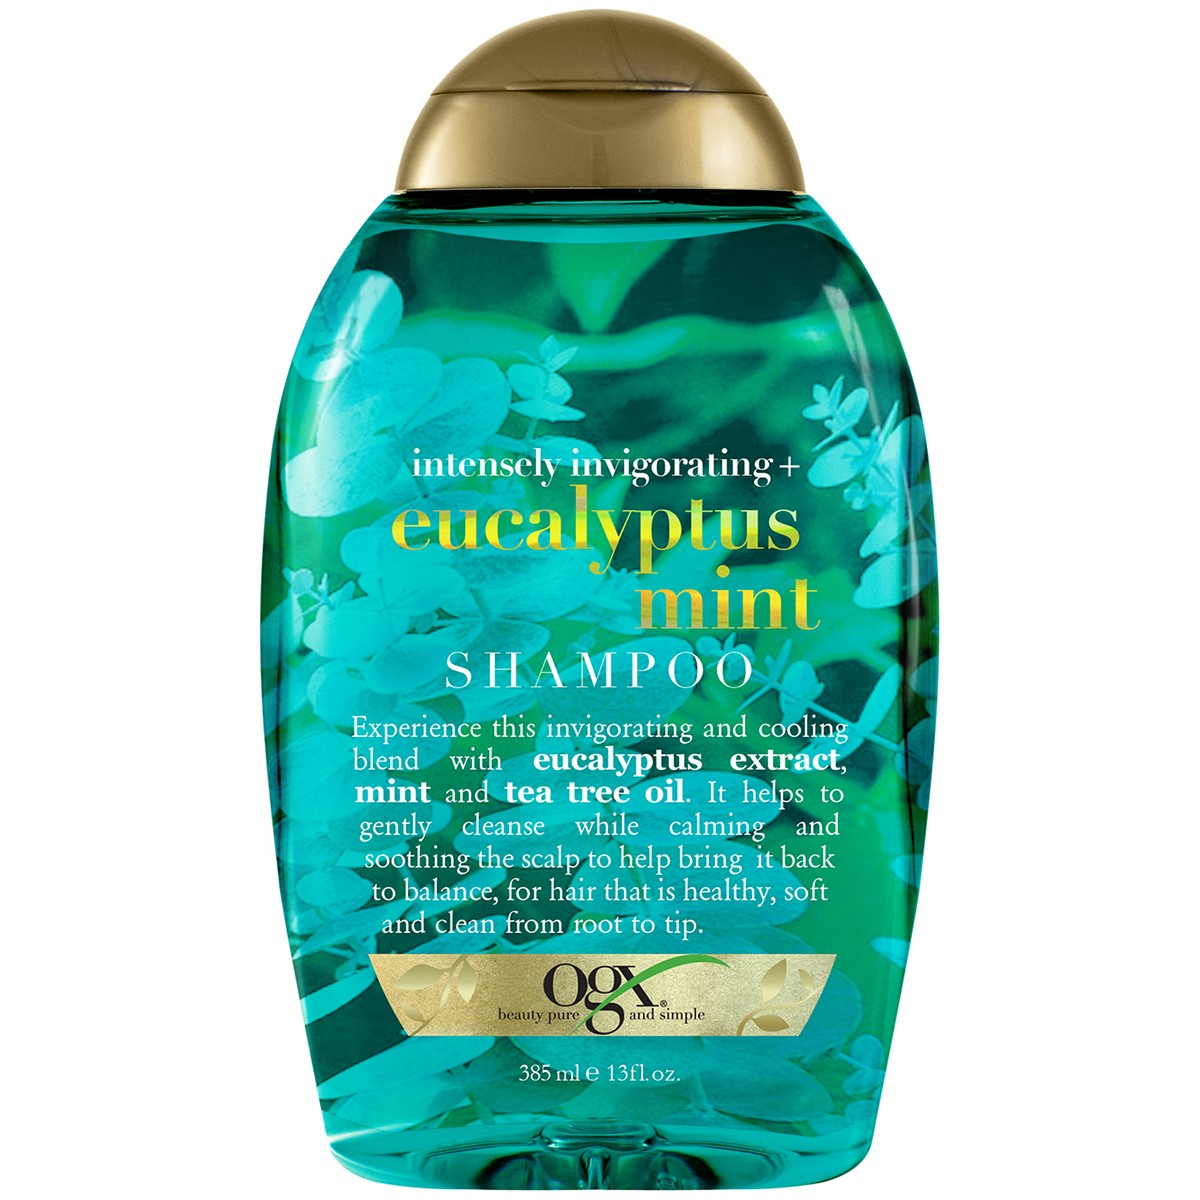 OGX Intensely Invigorating Eucalyptus Mint Shampoo, 13 Oz